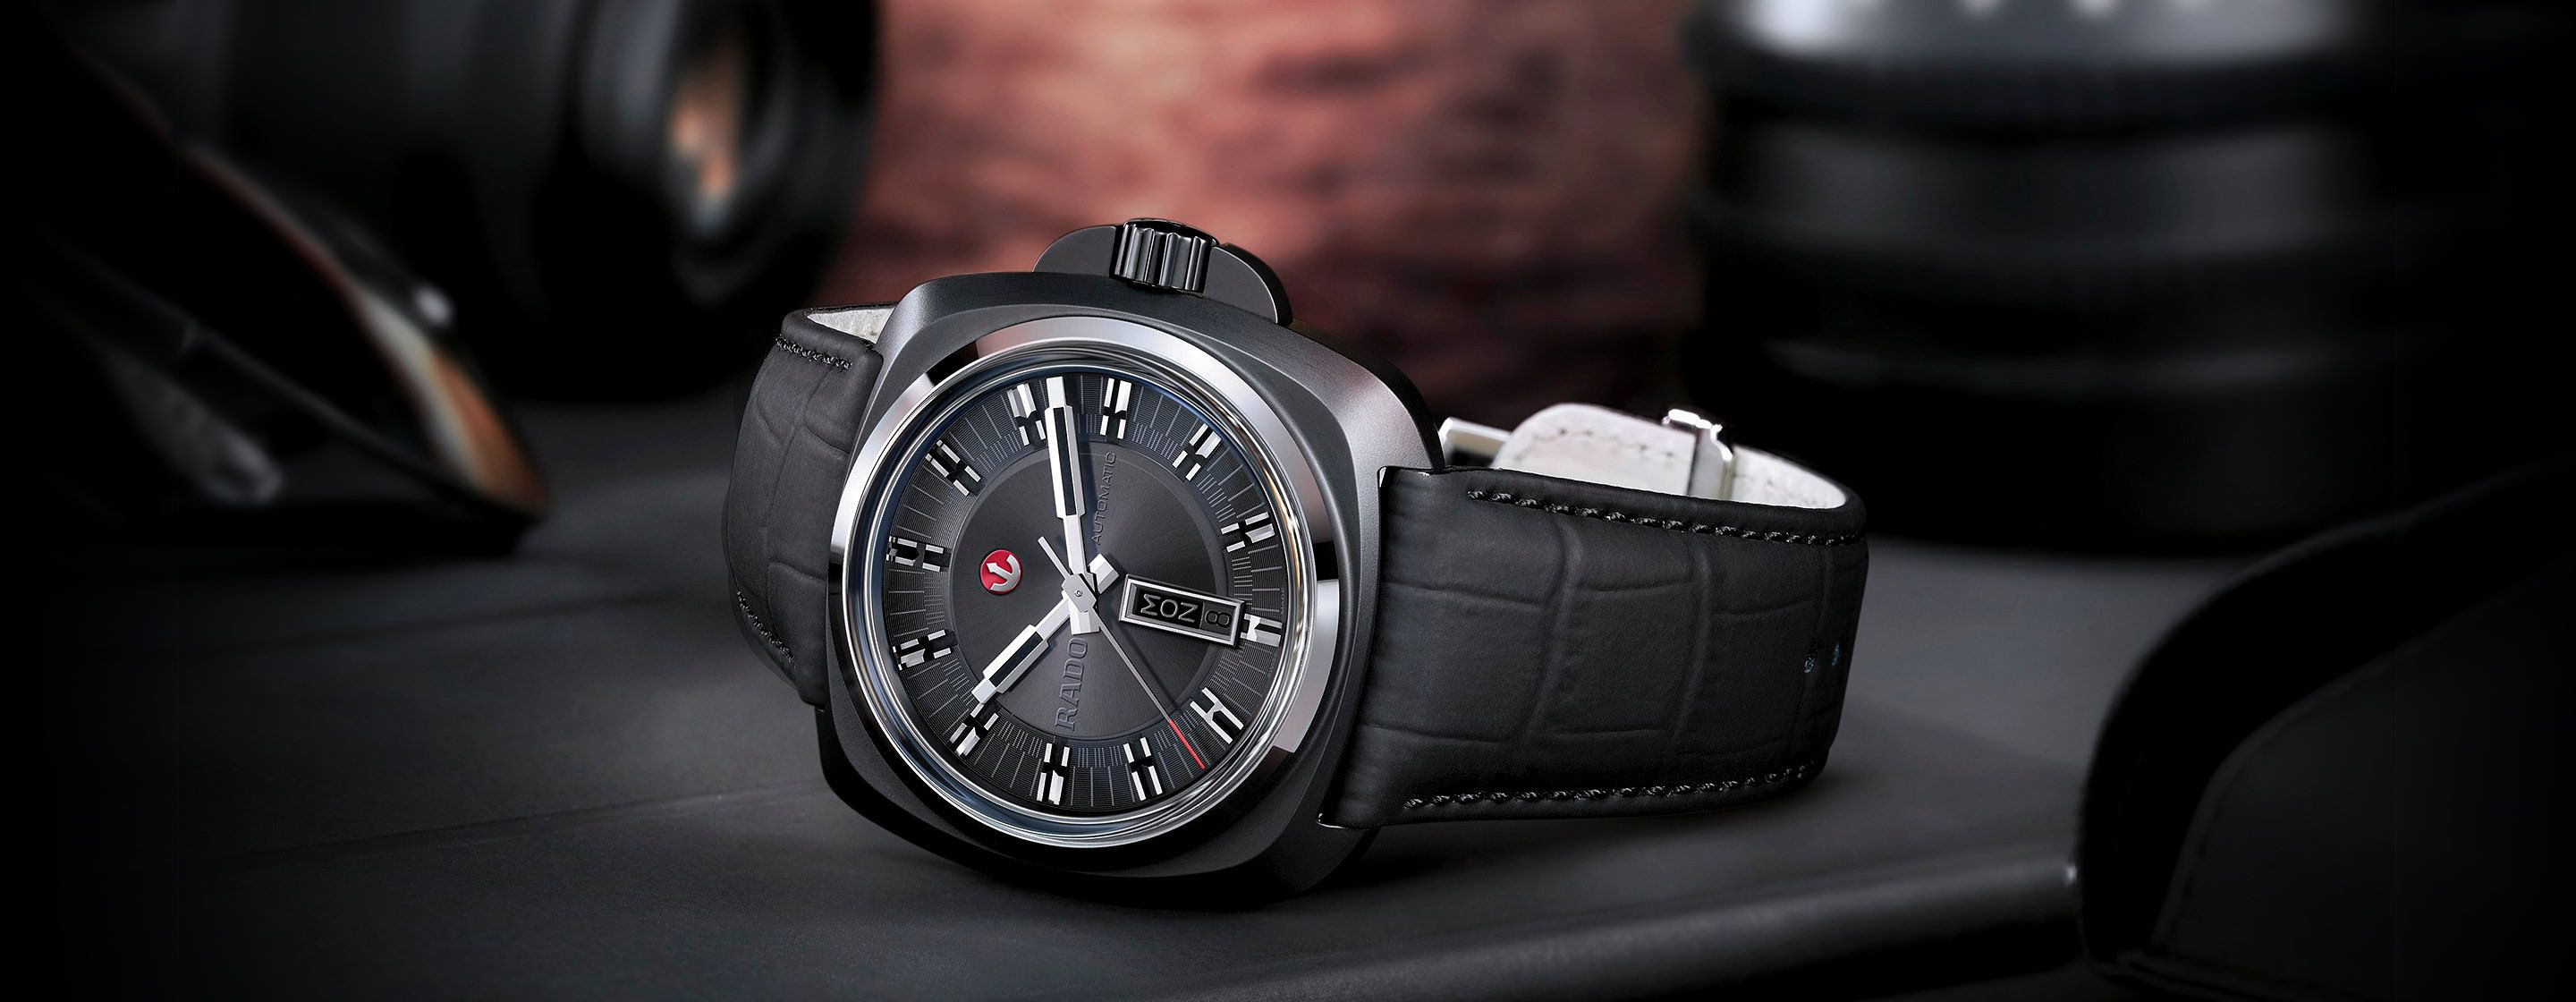 7423f1cb8 Rado Watches - An Overview of Top 15 Rado Models - Ethos